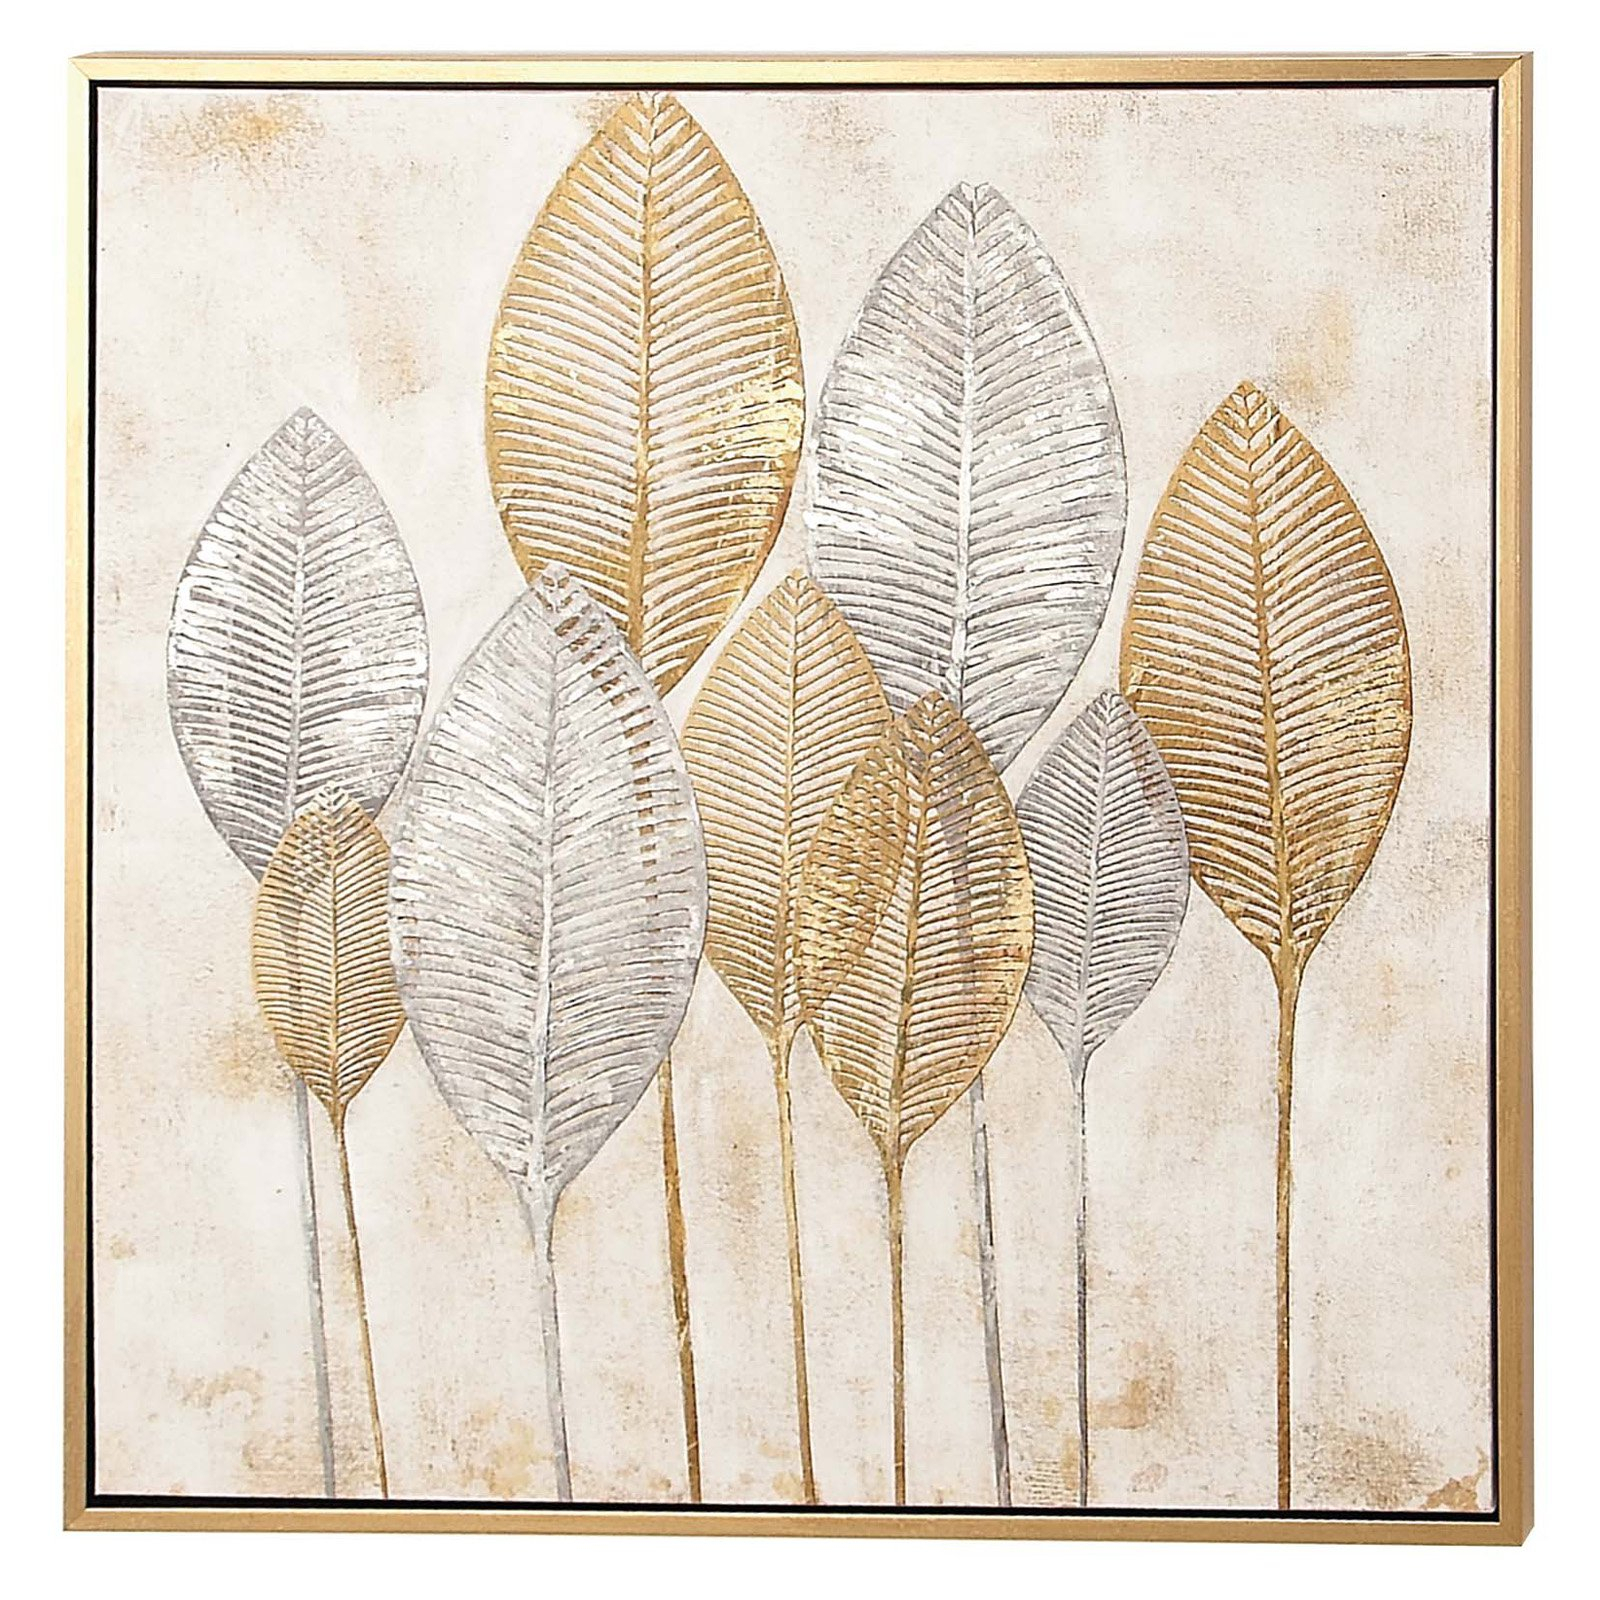 Decmode Square Framed Veined Leaves Wall Art Gold / Silver For Tree Of Life Wall Decor By Red Barrel Studio (View 18 of 30)